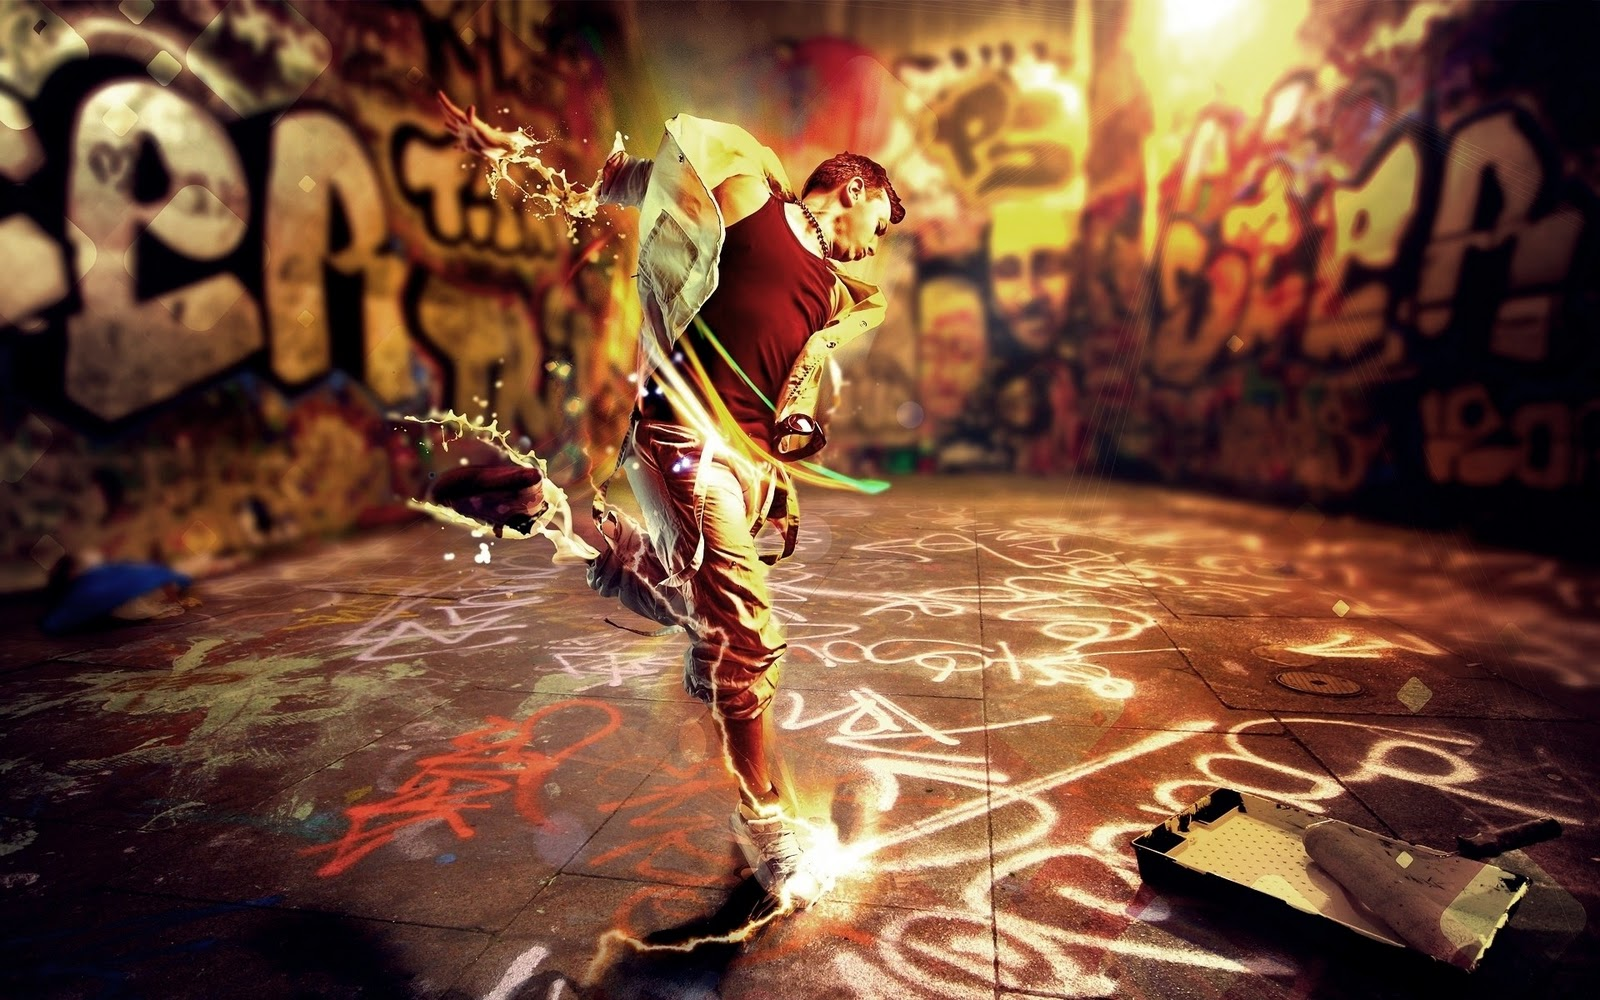 https://4.bp.blogspot.com/-r2Iuslvon1k/Tt8Ofe8bNCI/AAAAAAAAAd4/cWx-RhKKykg/s1600/Dance+Movement+Boy+Graffiti+Rhythm+Energy+Music+Style+Creative+HD+Wallpaper+-+UniqueWalls.Blogspot.Com.jpg